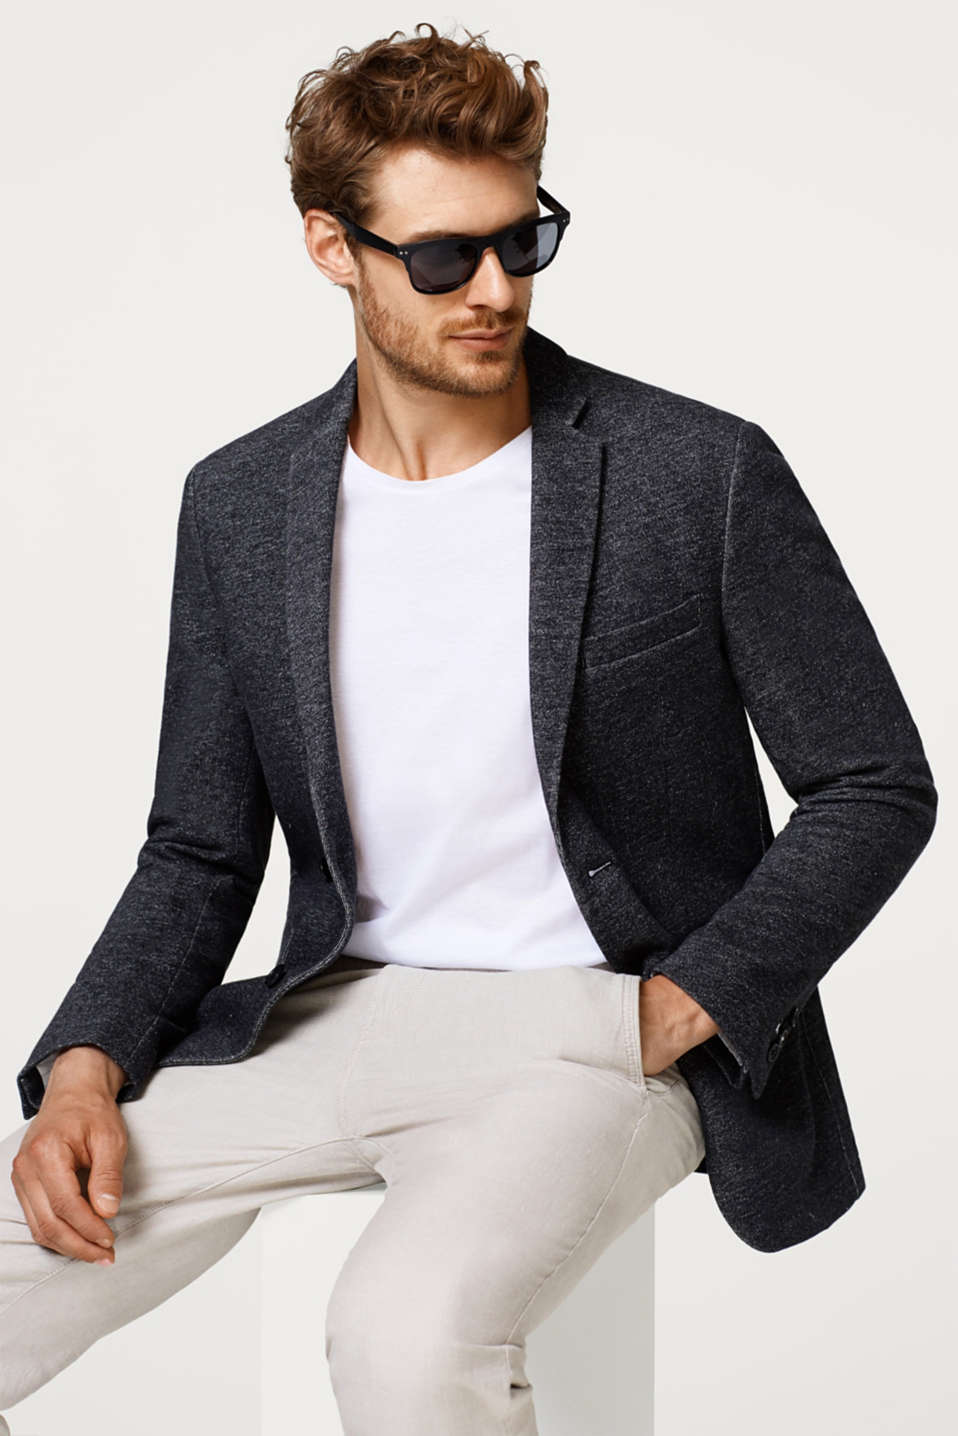 Mens blazer made of melange sweatshirt fabric, 100% cotton